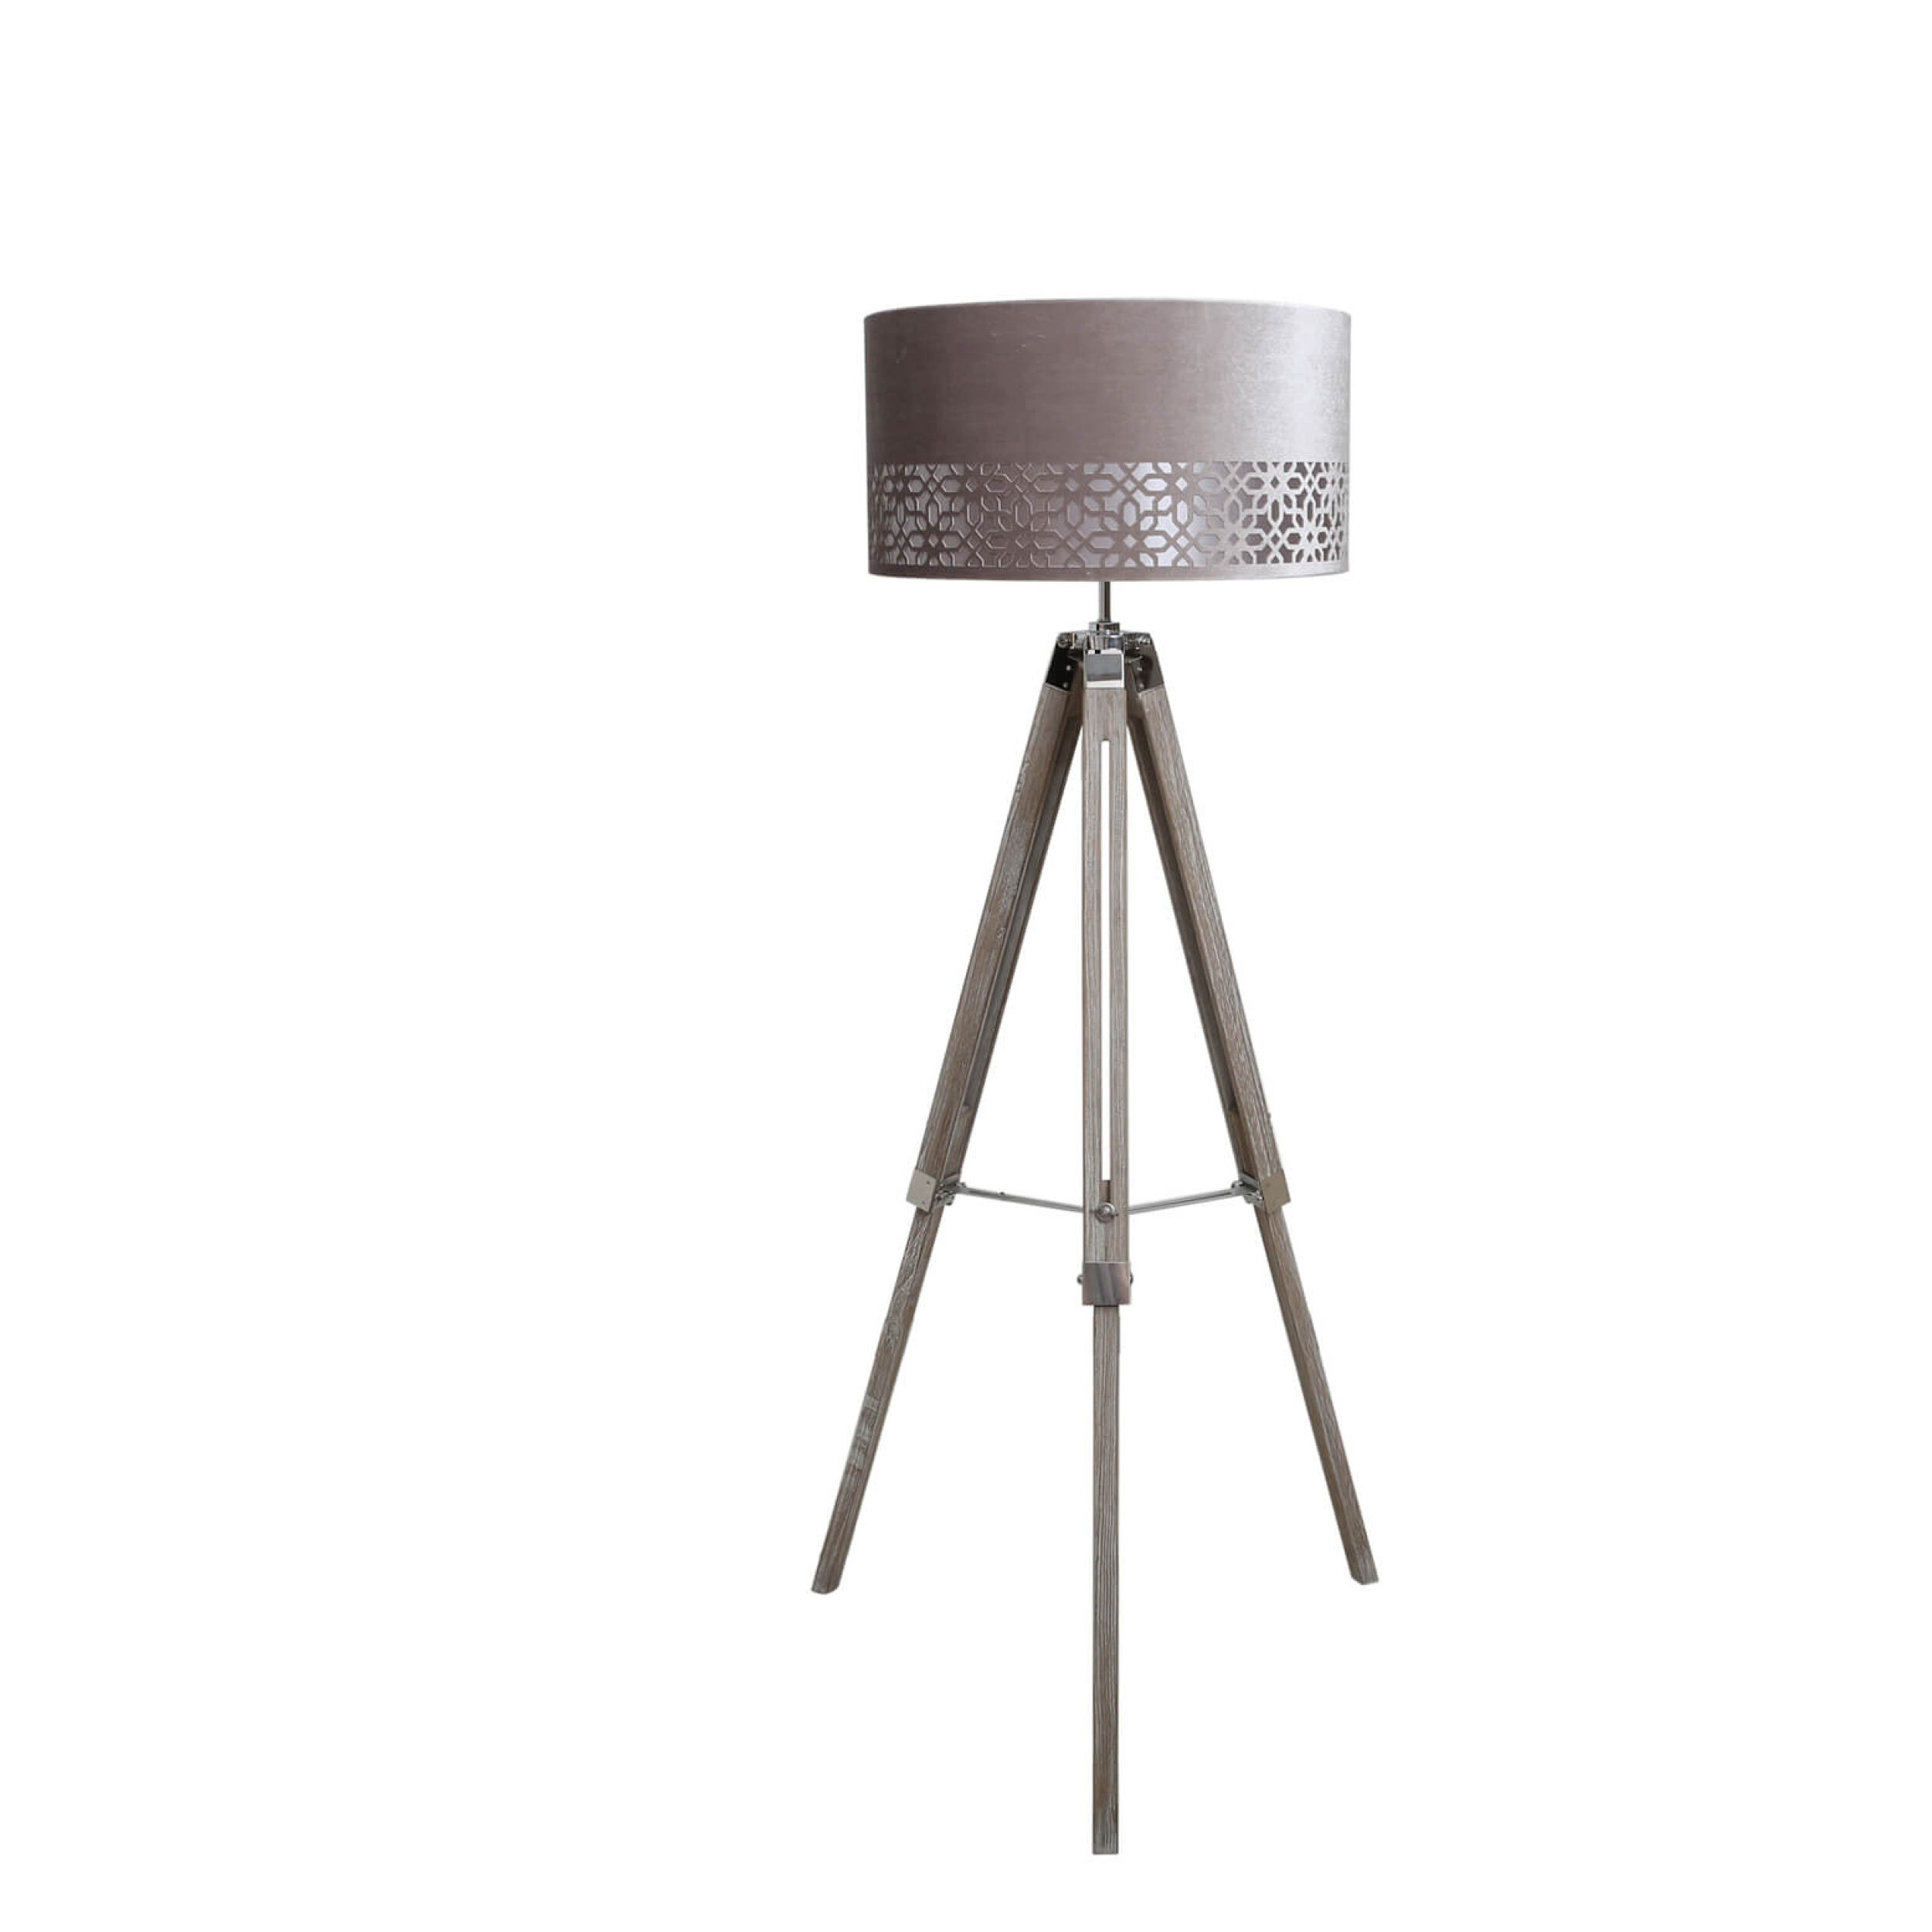 Williston Forge 142 Cm Tripod Stehlampe Heather Wayfair De